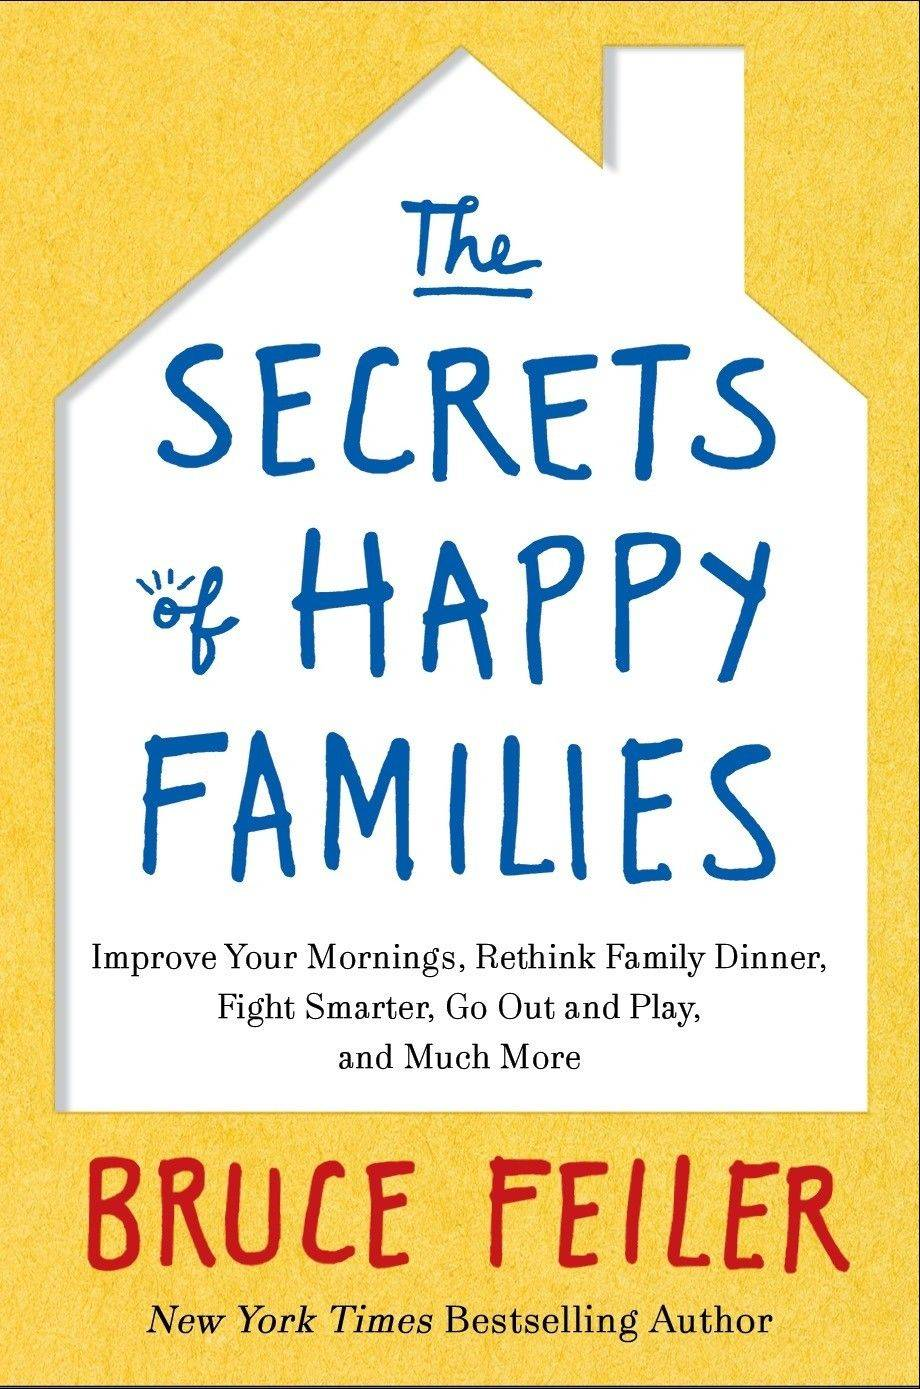 �The Secrets of Happy Families� by Bruce Feiler (William Morrow, 2103), $25.99, 292 pages.